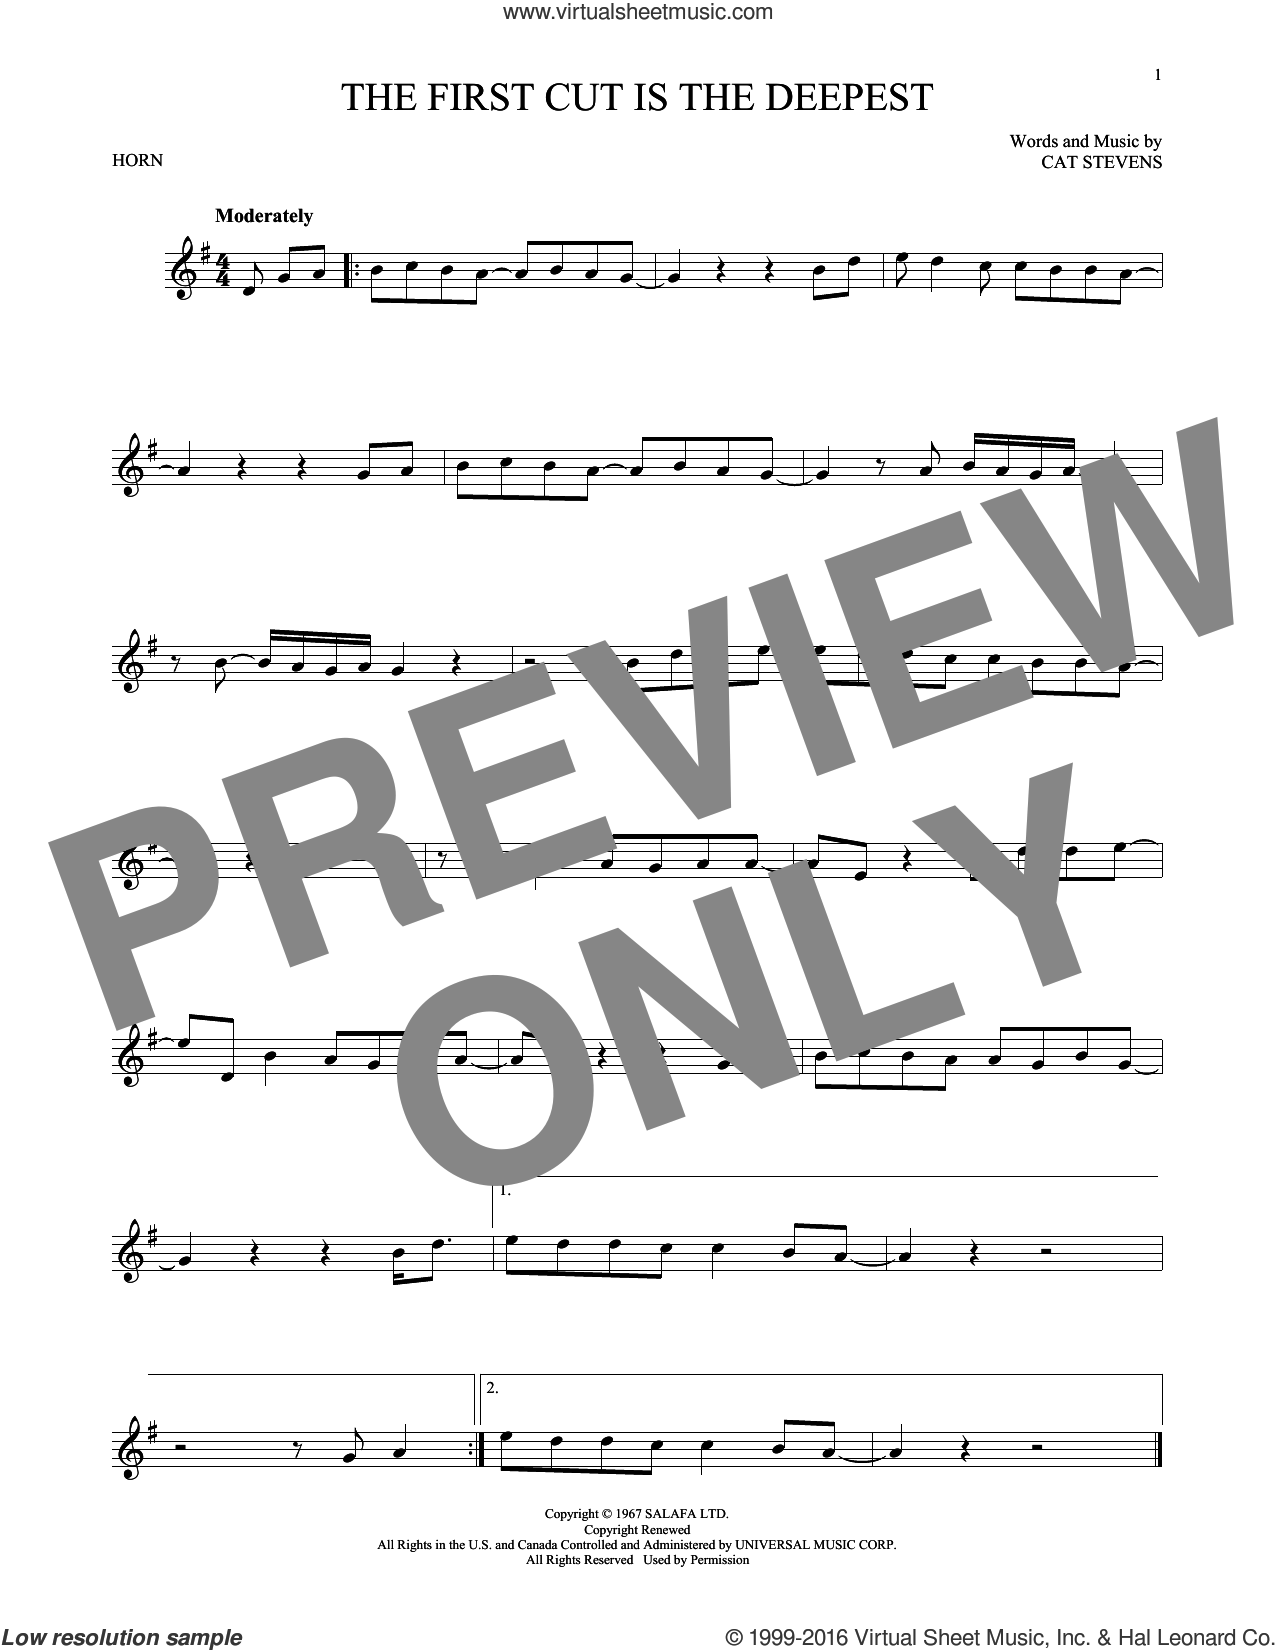 The First Cut Is The Deepest sheet music for horn solo by Cat Stevens